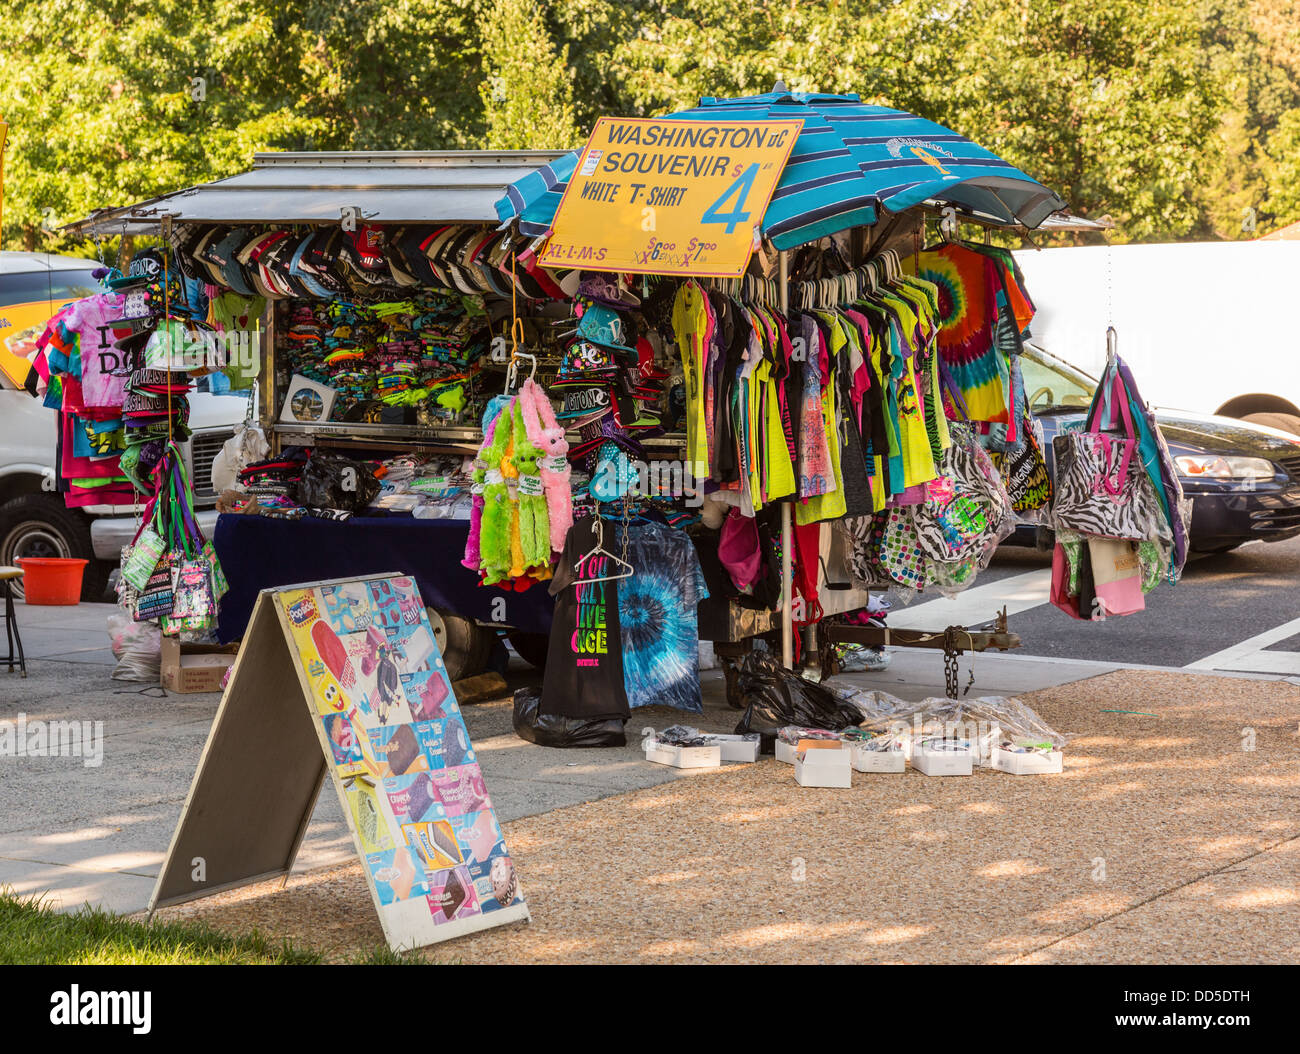 Typical street vendor selling souvenir T-shirts and gifts in Washington DC, USA - Stock Image